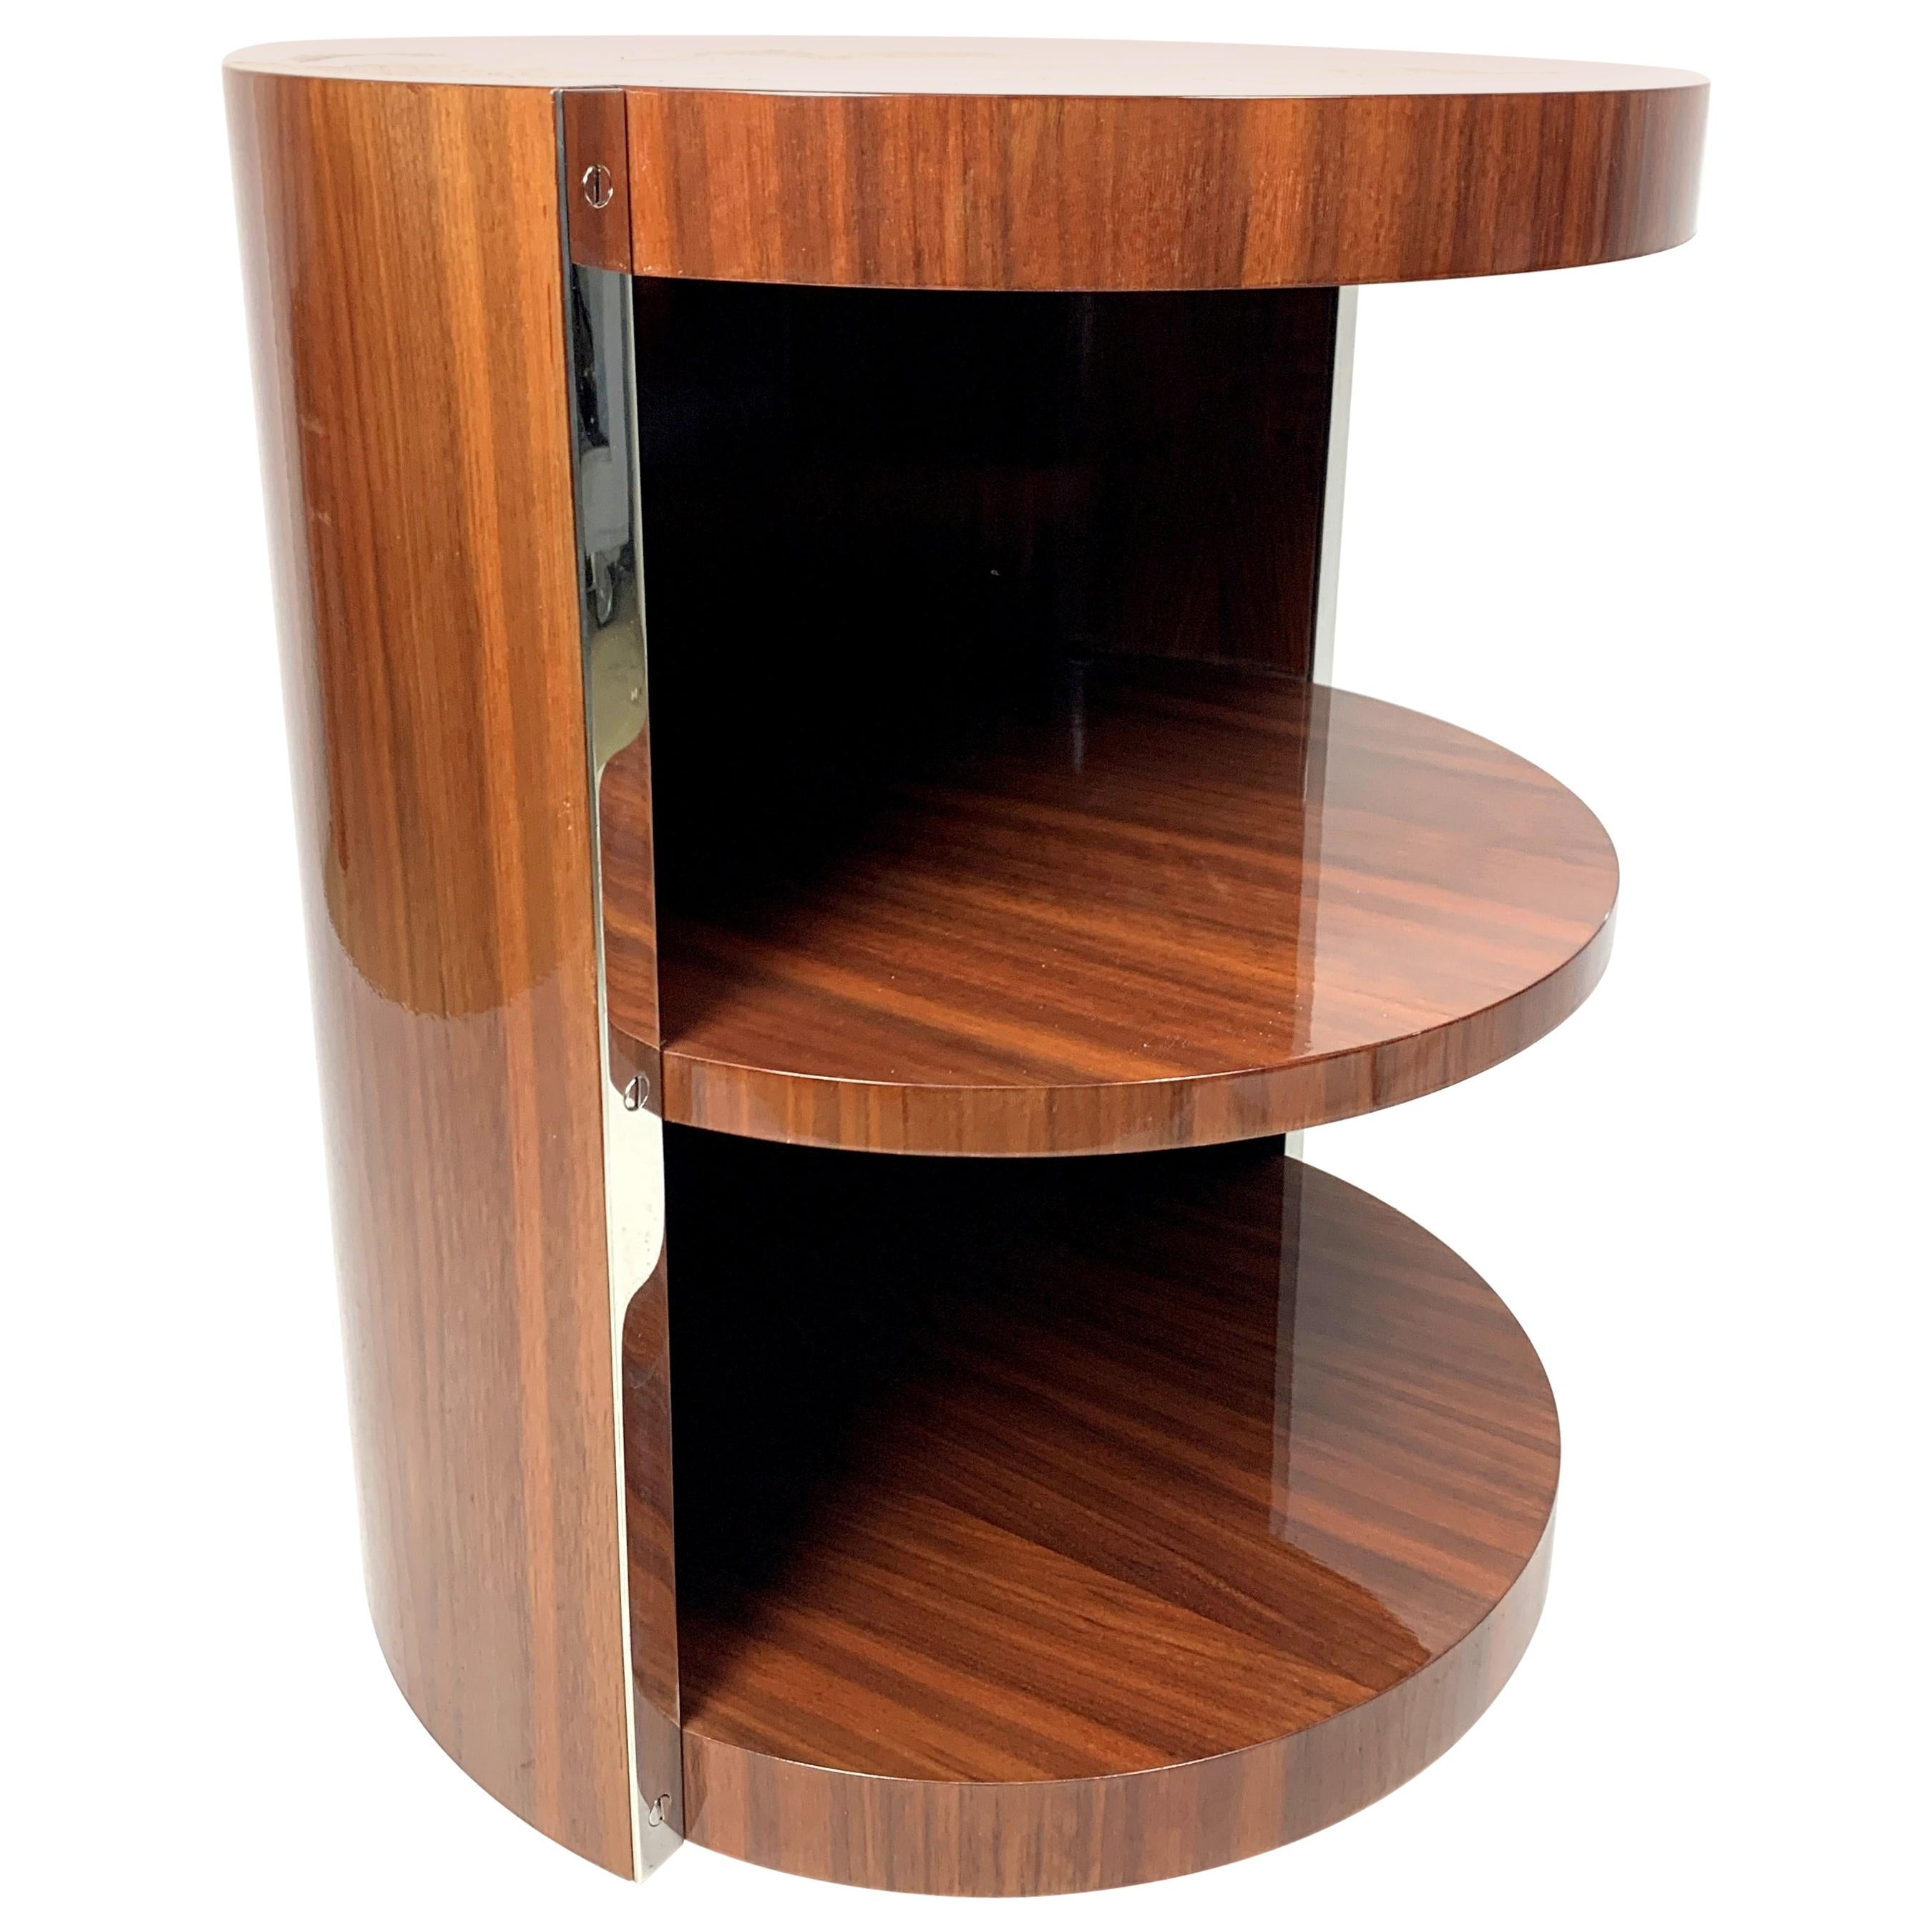 Art Deco Side Table with Walnut Veneer and Chrome-Plated Steel